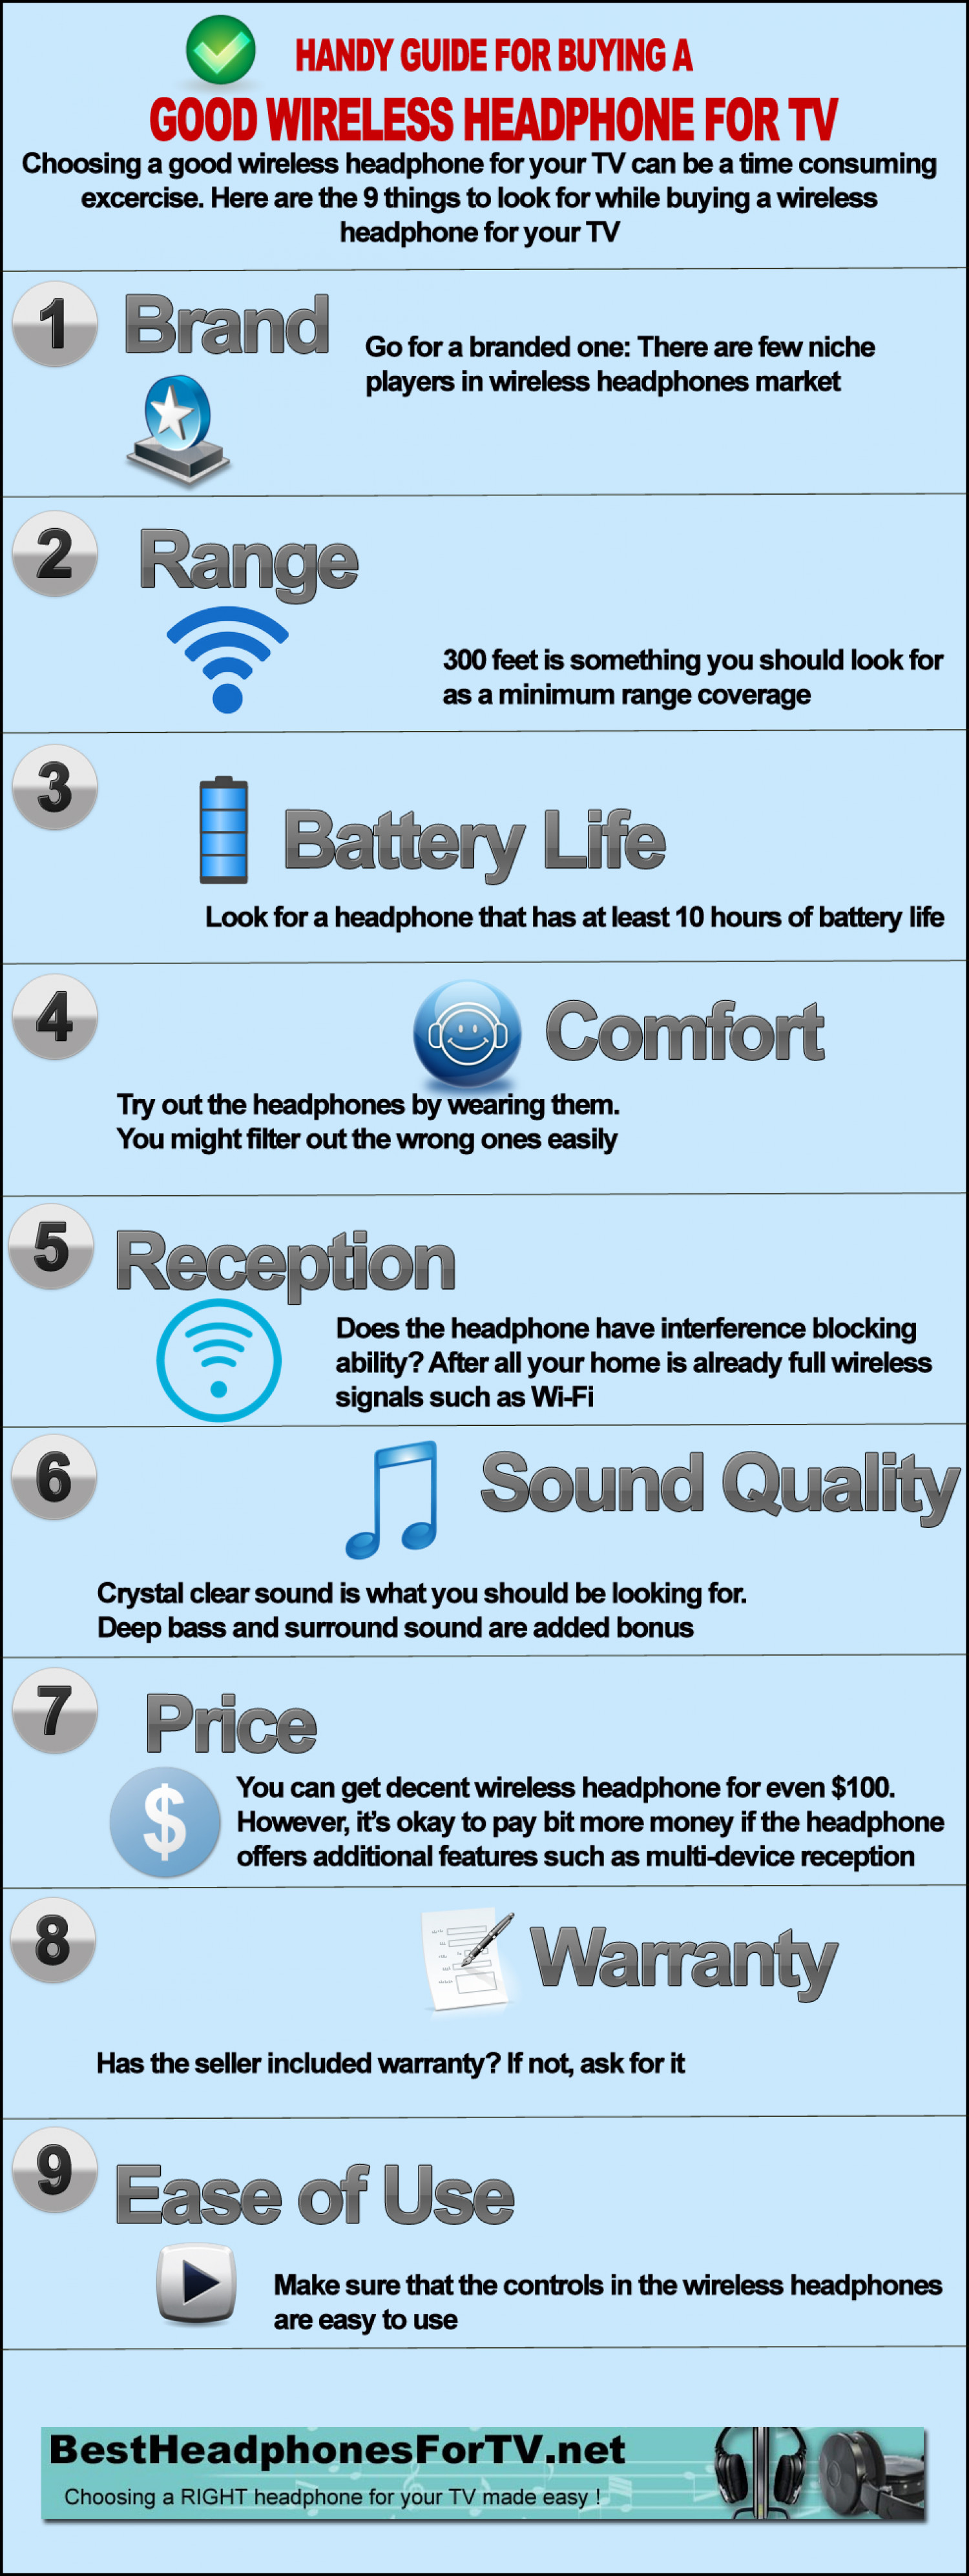 Handy Guide For Buying a Good Wireless Headphone for TV Infographic